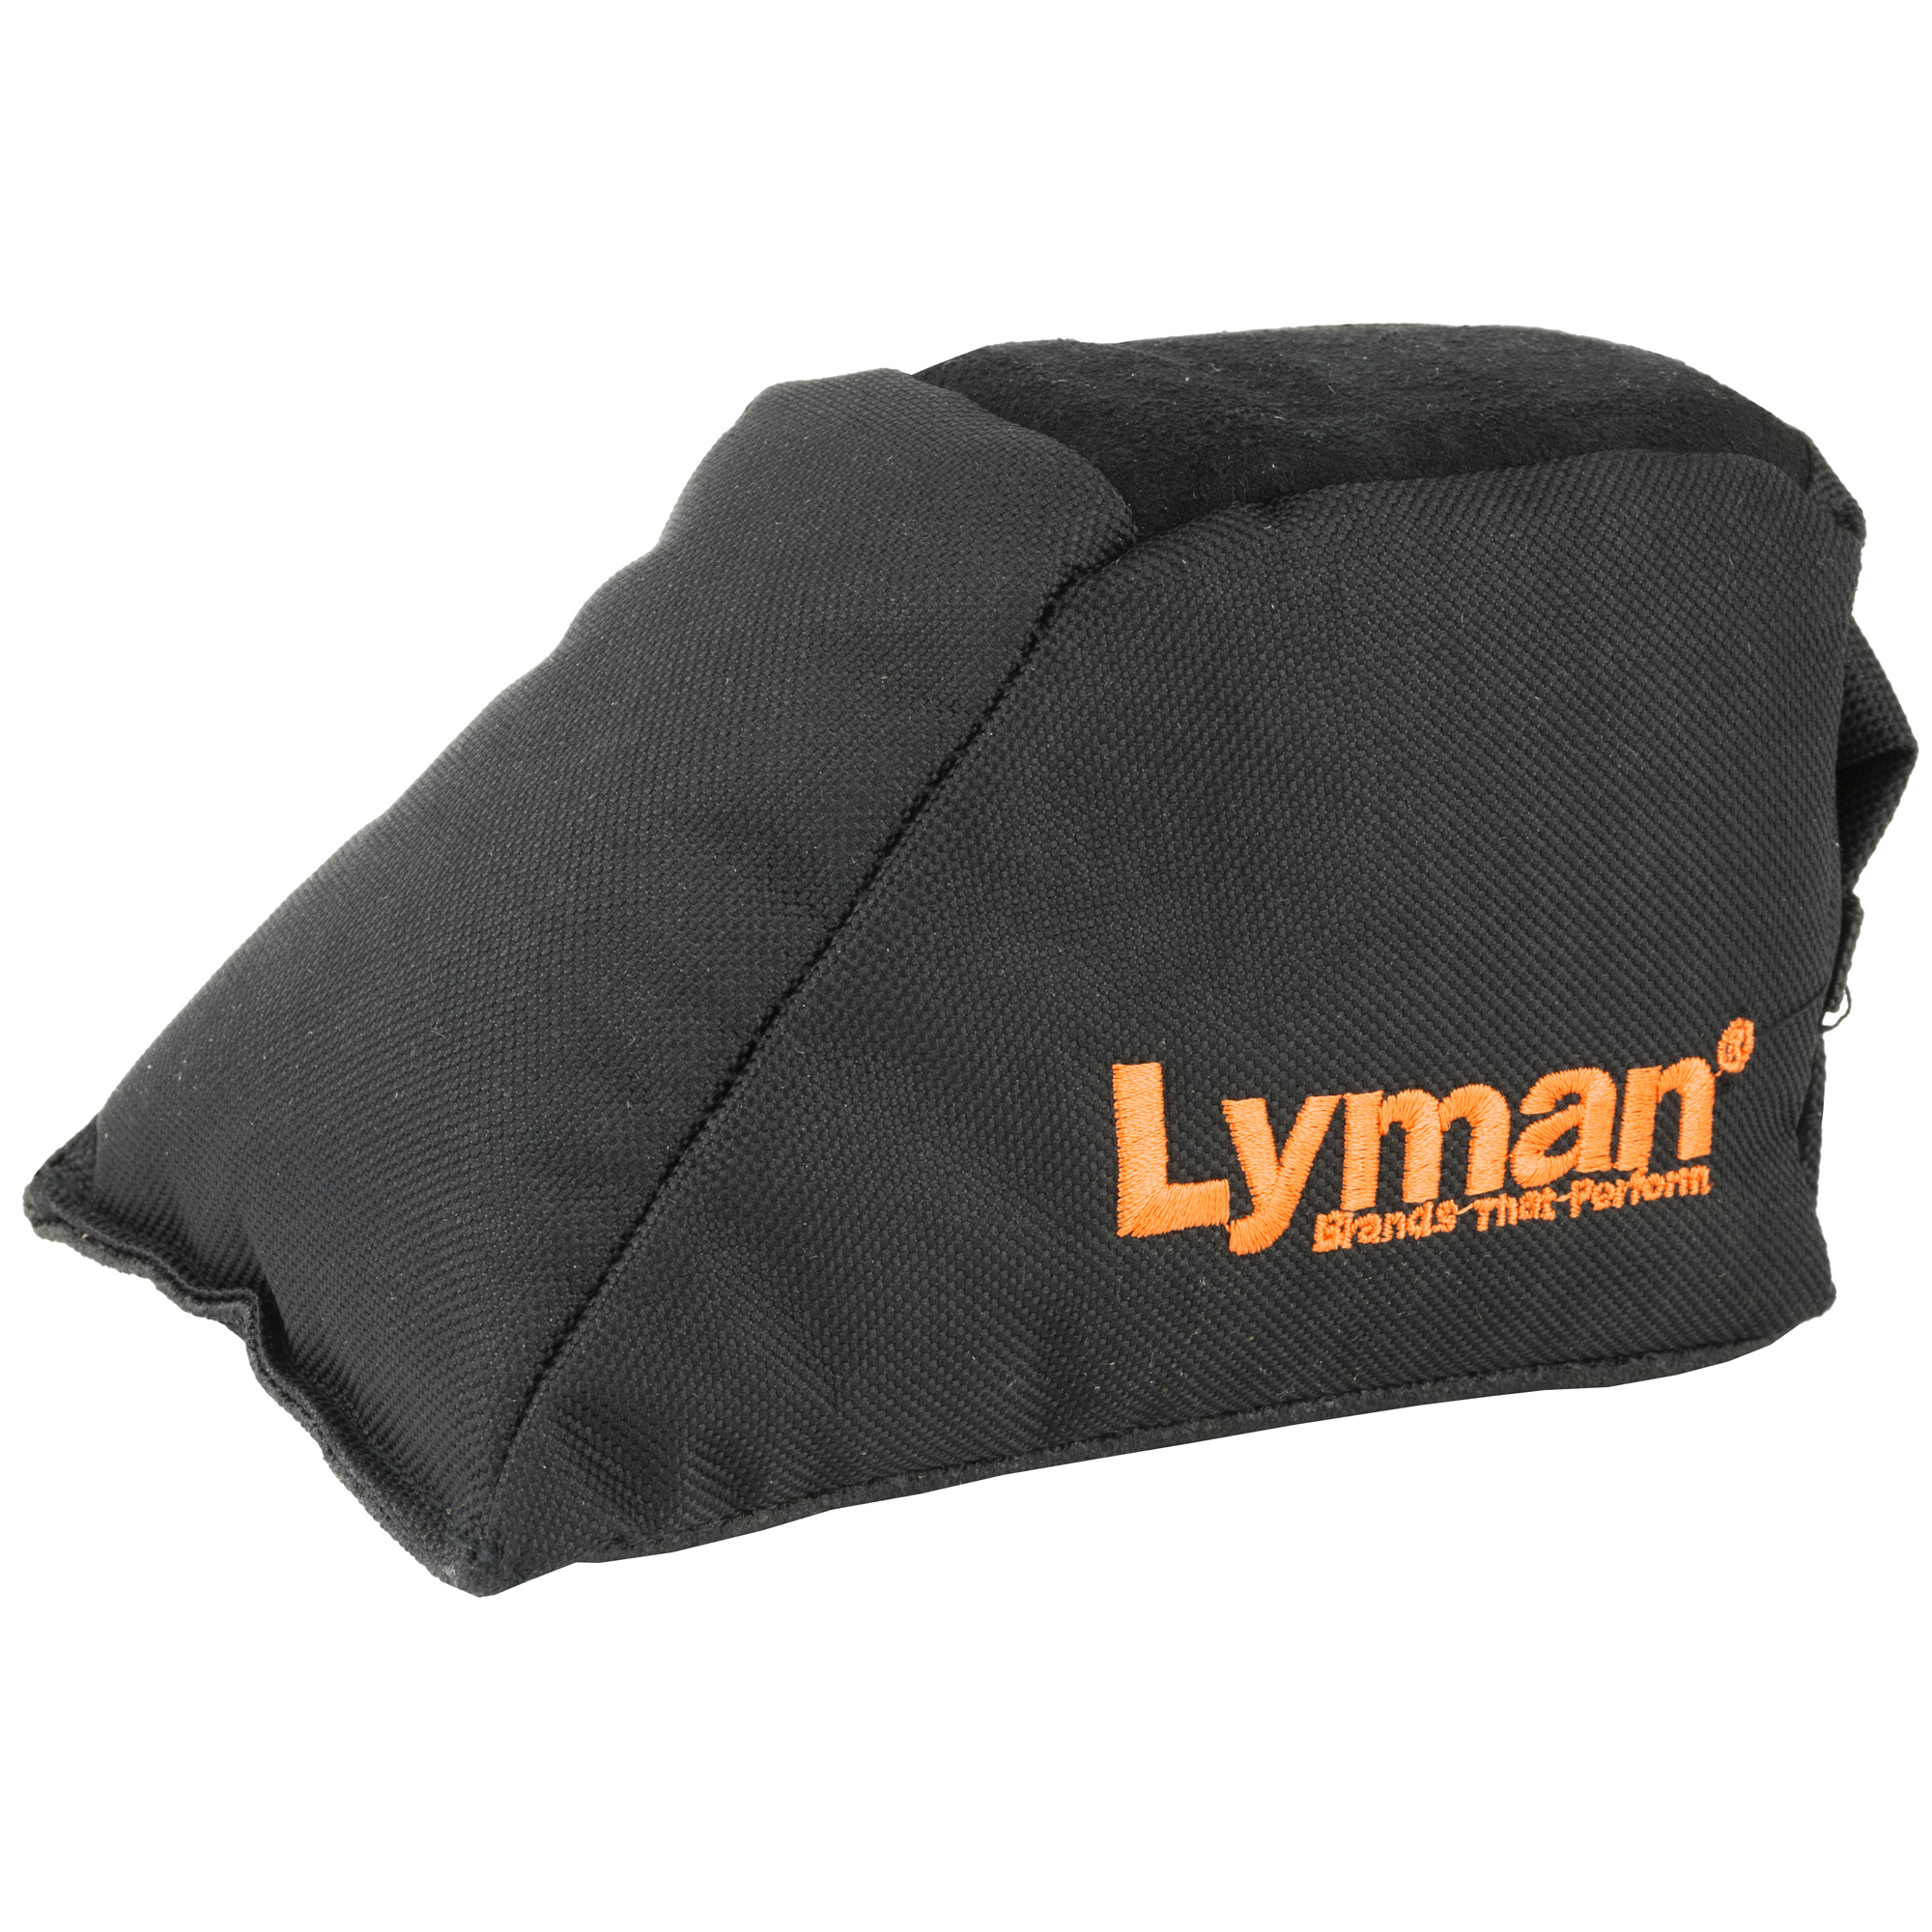 Lyman Wedge Shooting Bag Filled Blk